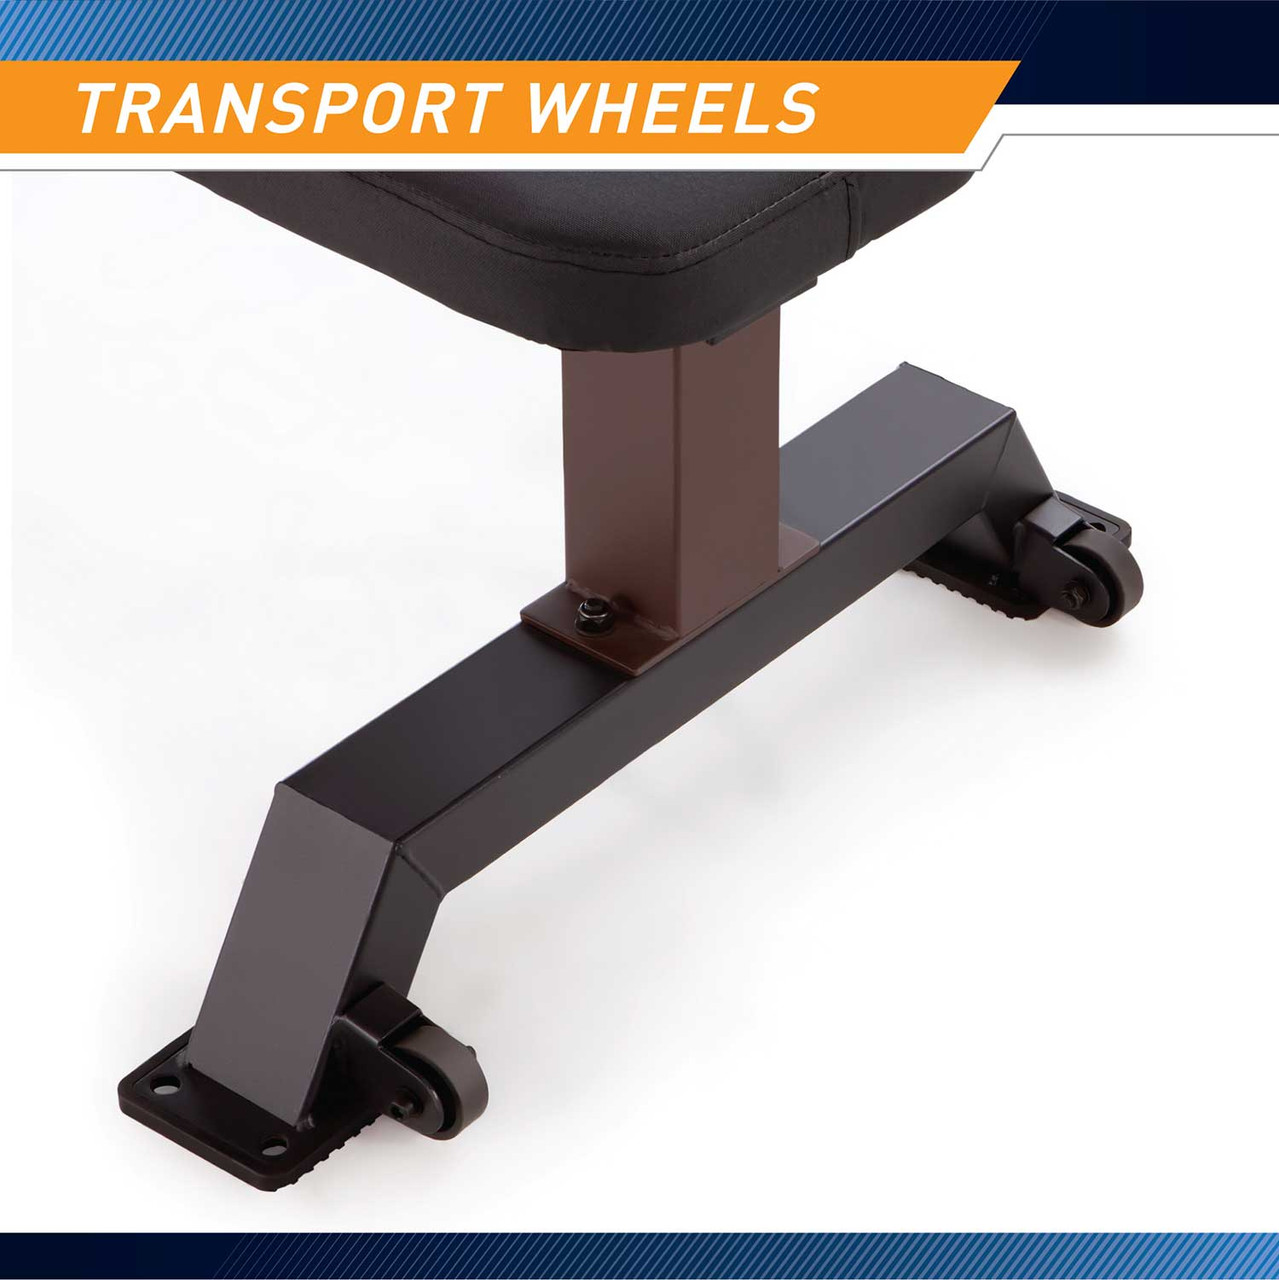 The SteelBody Flat Bench STB-10101 includes wheels for easy transportation